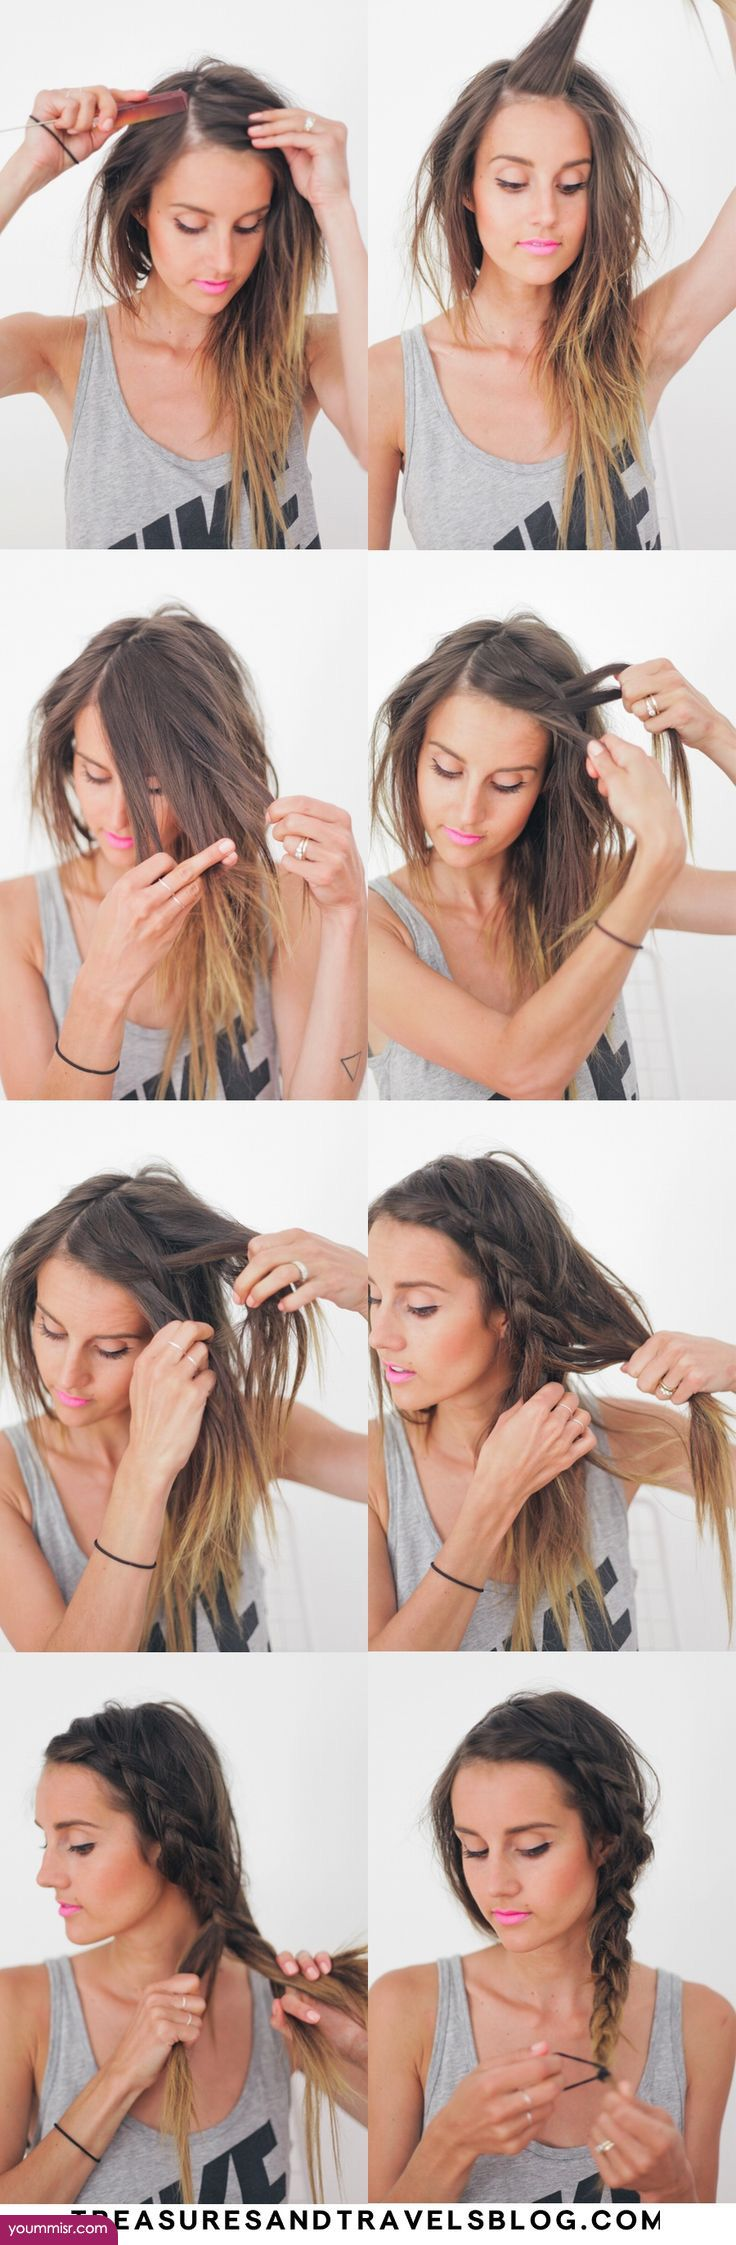 easy short long hairstyles 2015 2016 by step http://www.yoummisr.com/easy-short-long-hairstyles-2015-2016-step/